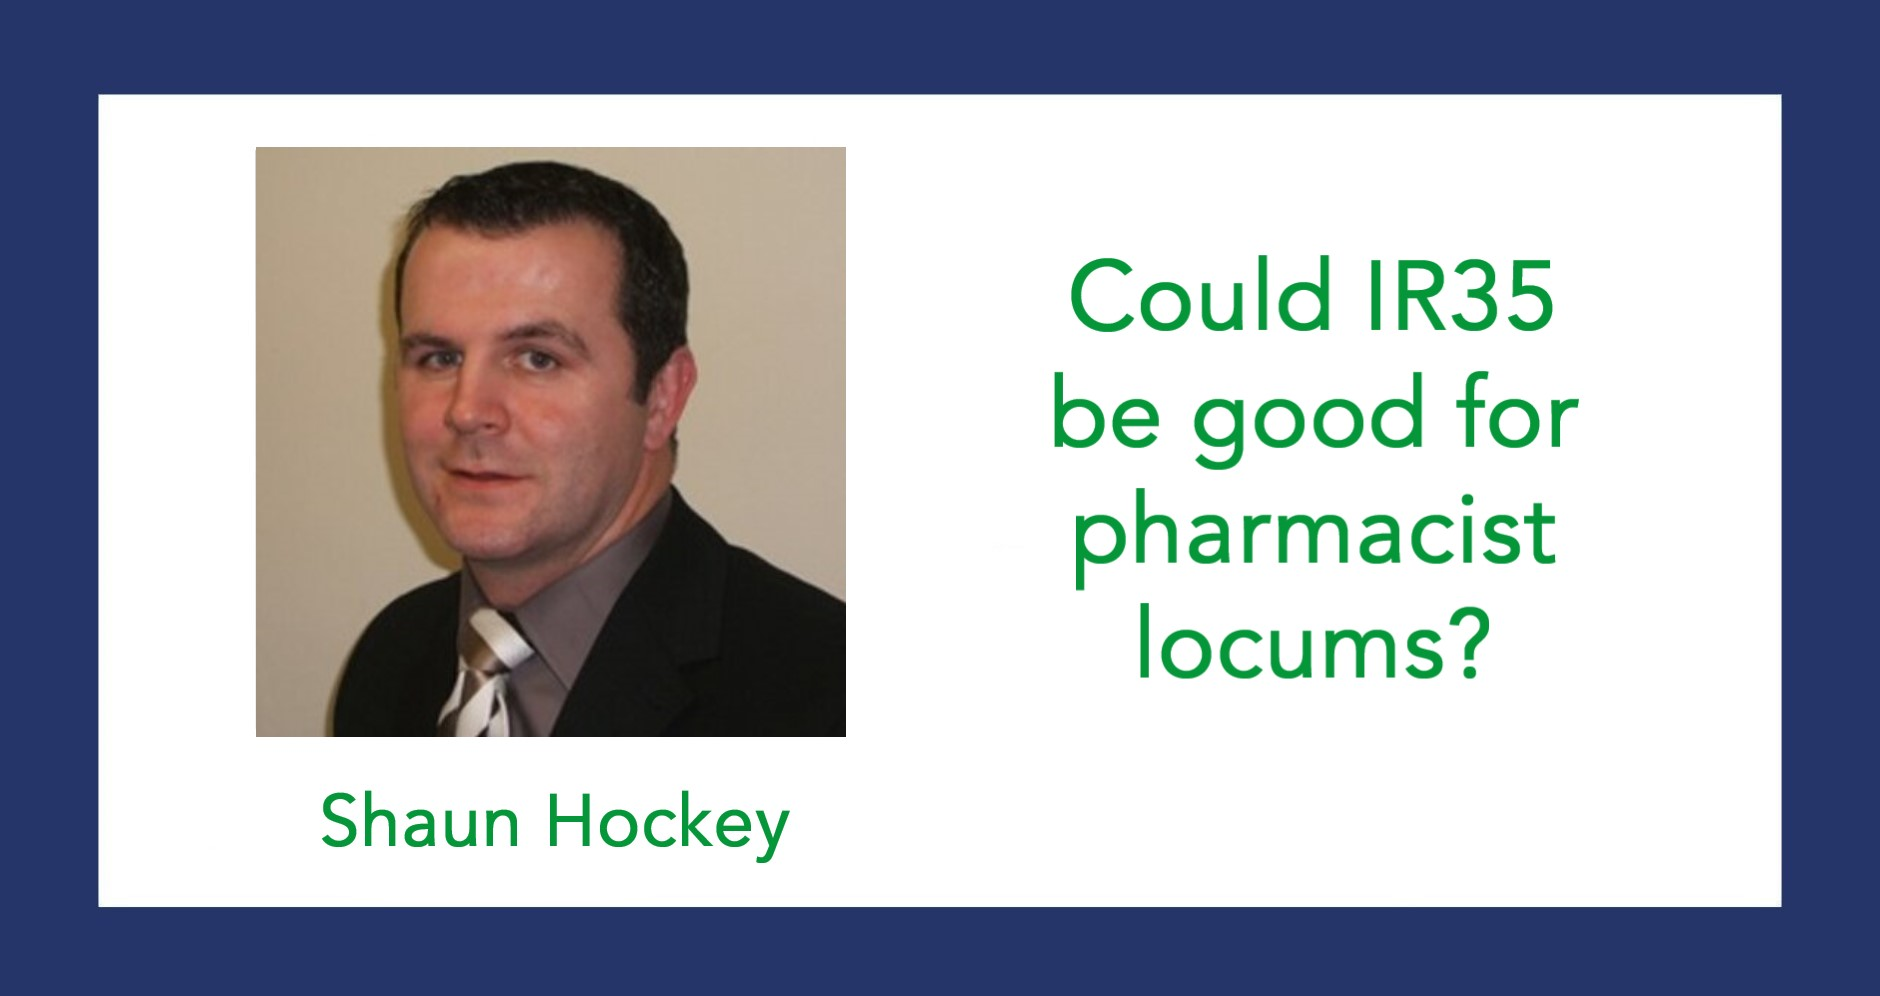 Could IR35 be good for pharmacist locums?